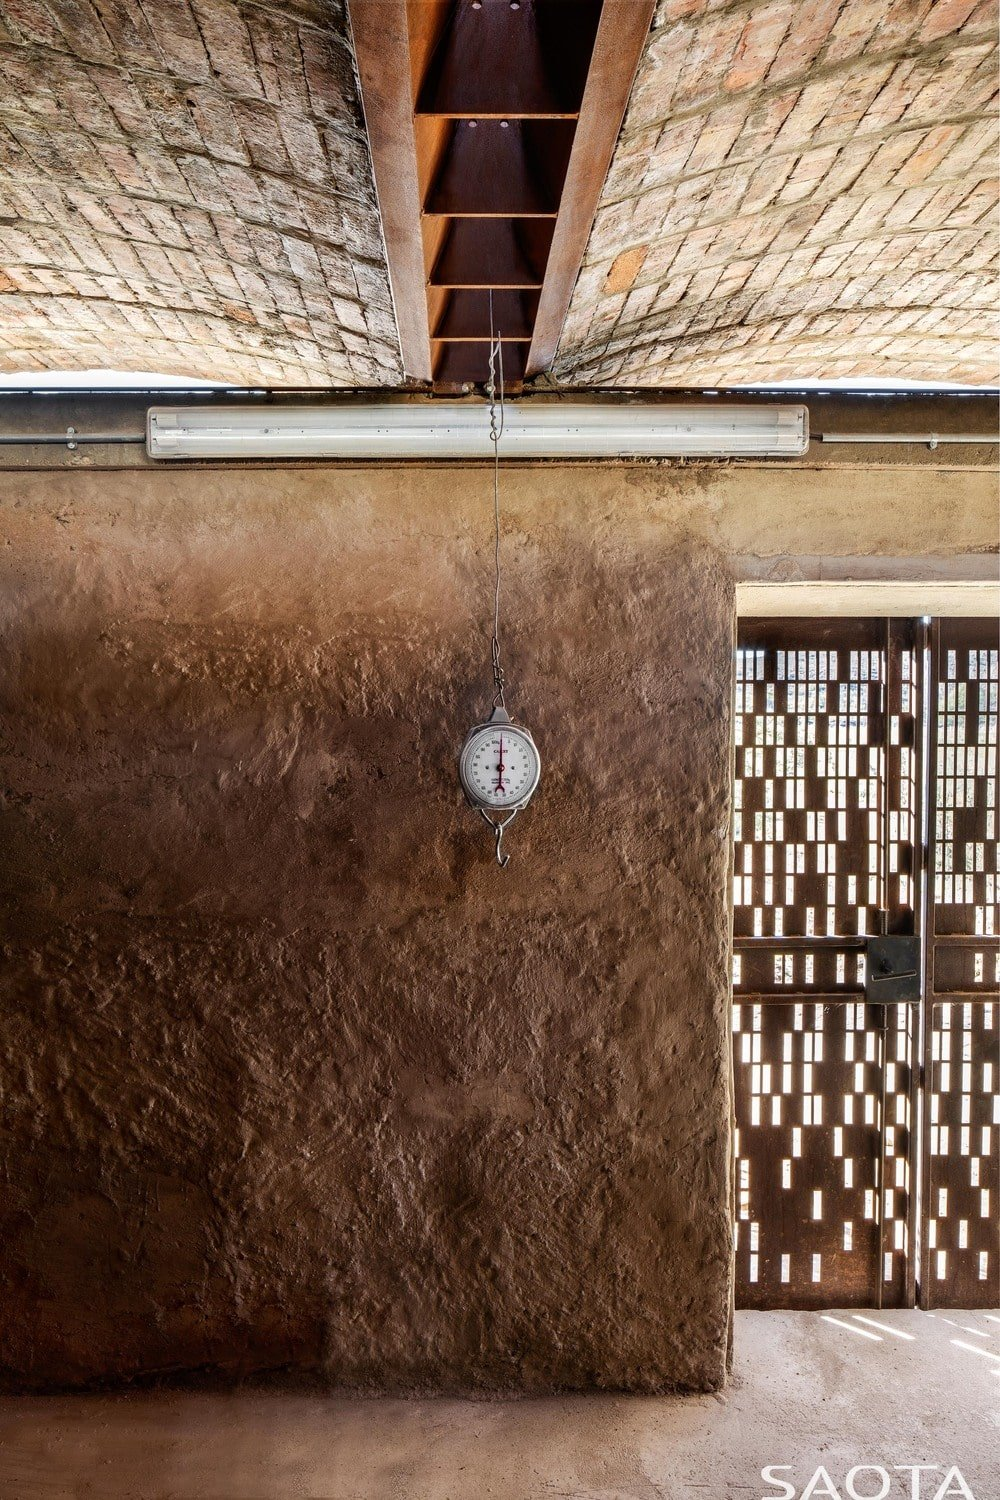 This is a closer look at the textured earthy wall and the brick ceiling.